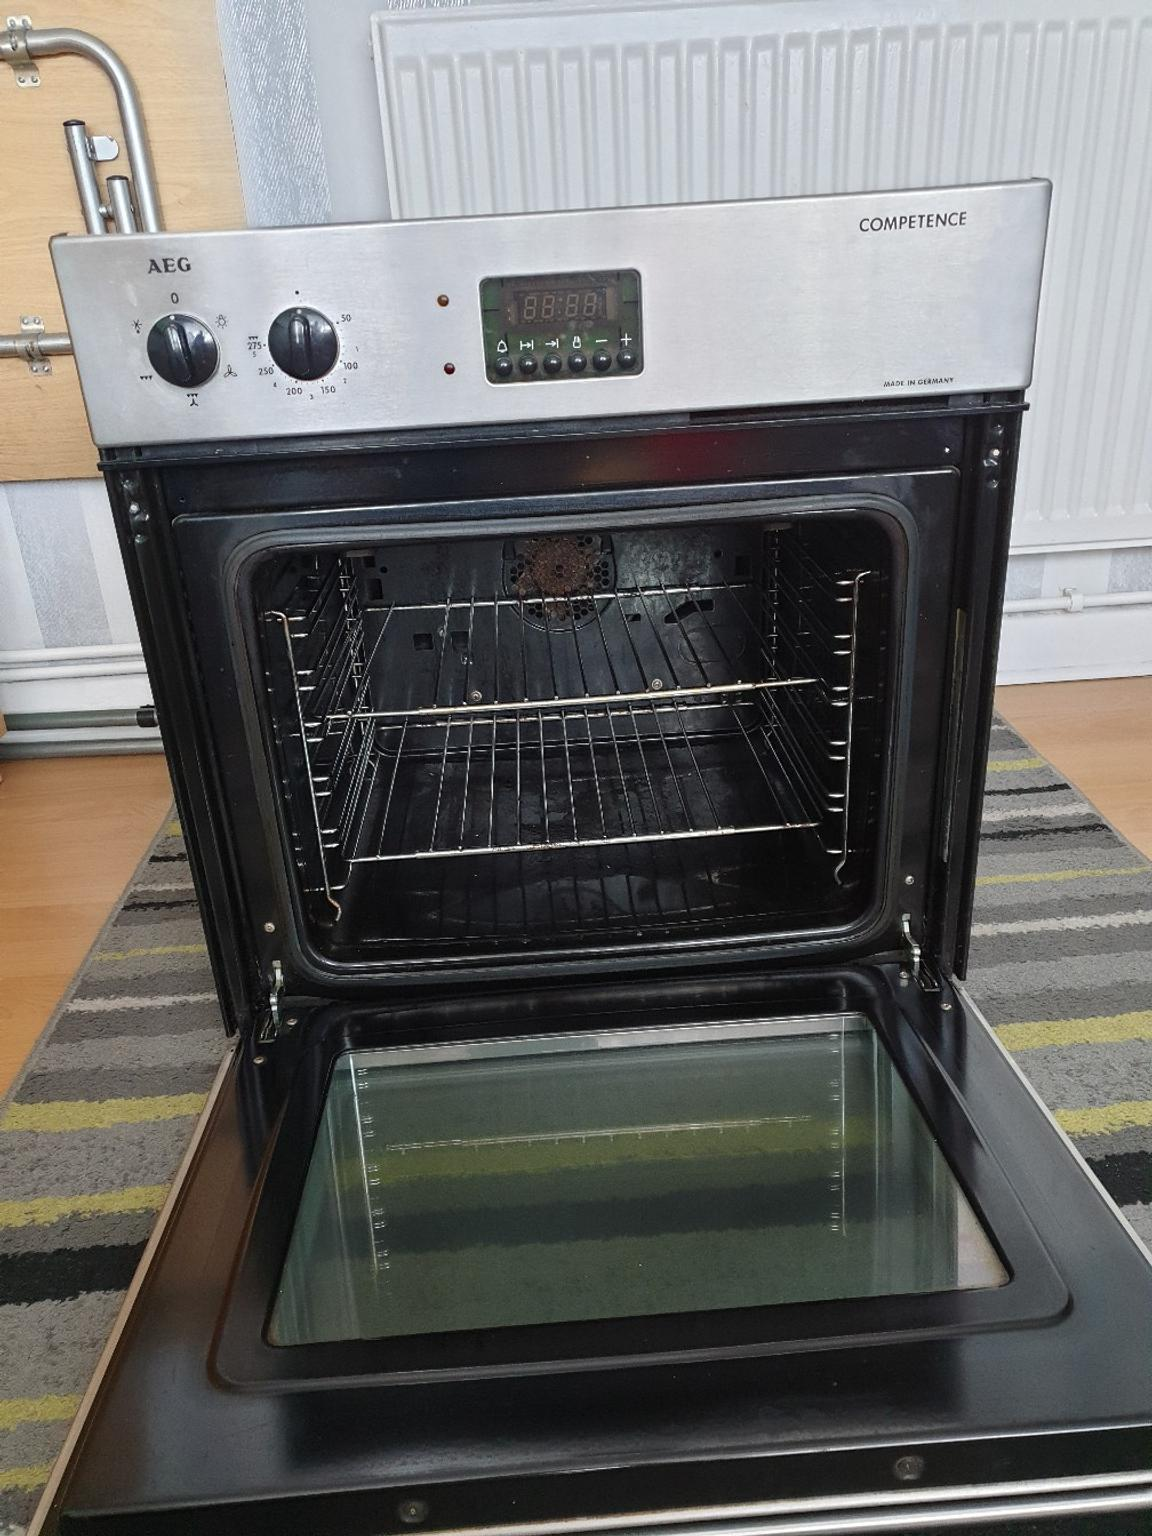 Aeg Competence Build In Oven In Ub4 Hillingdon For 163 80 00